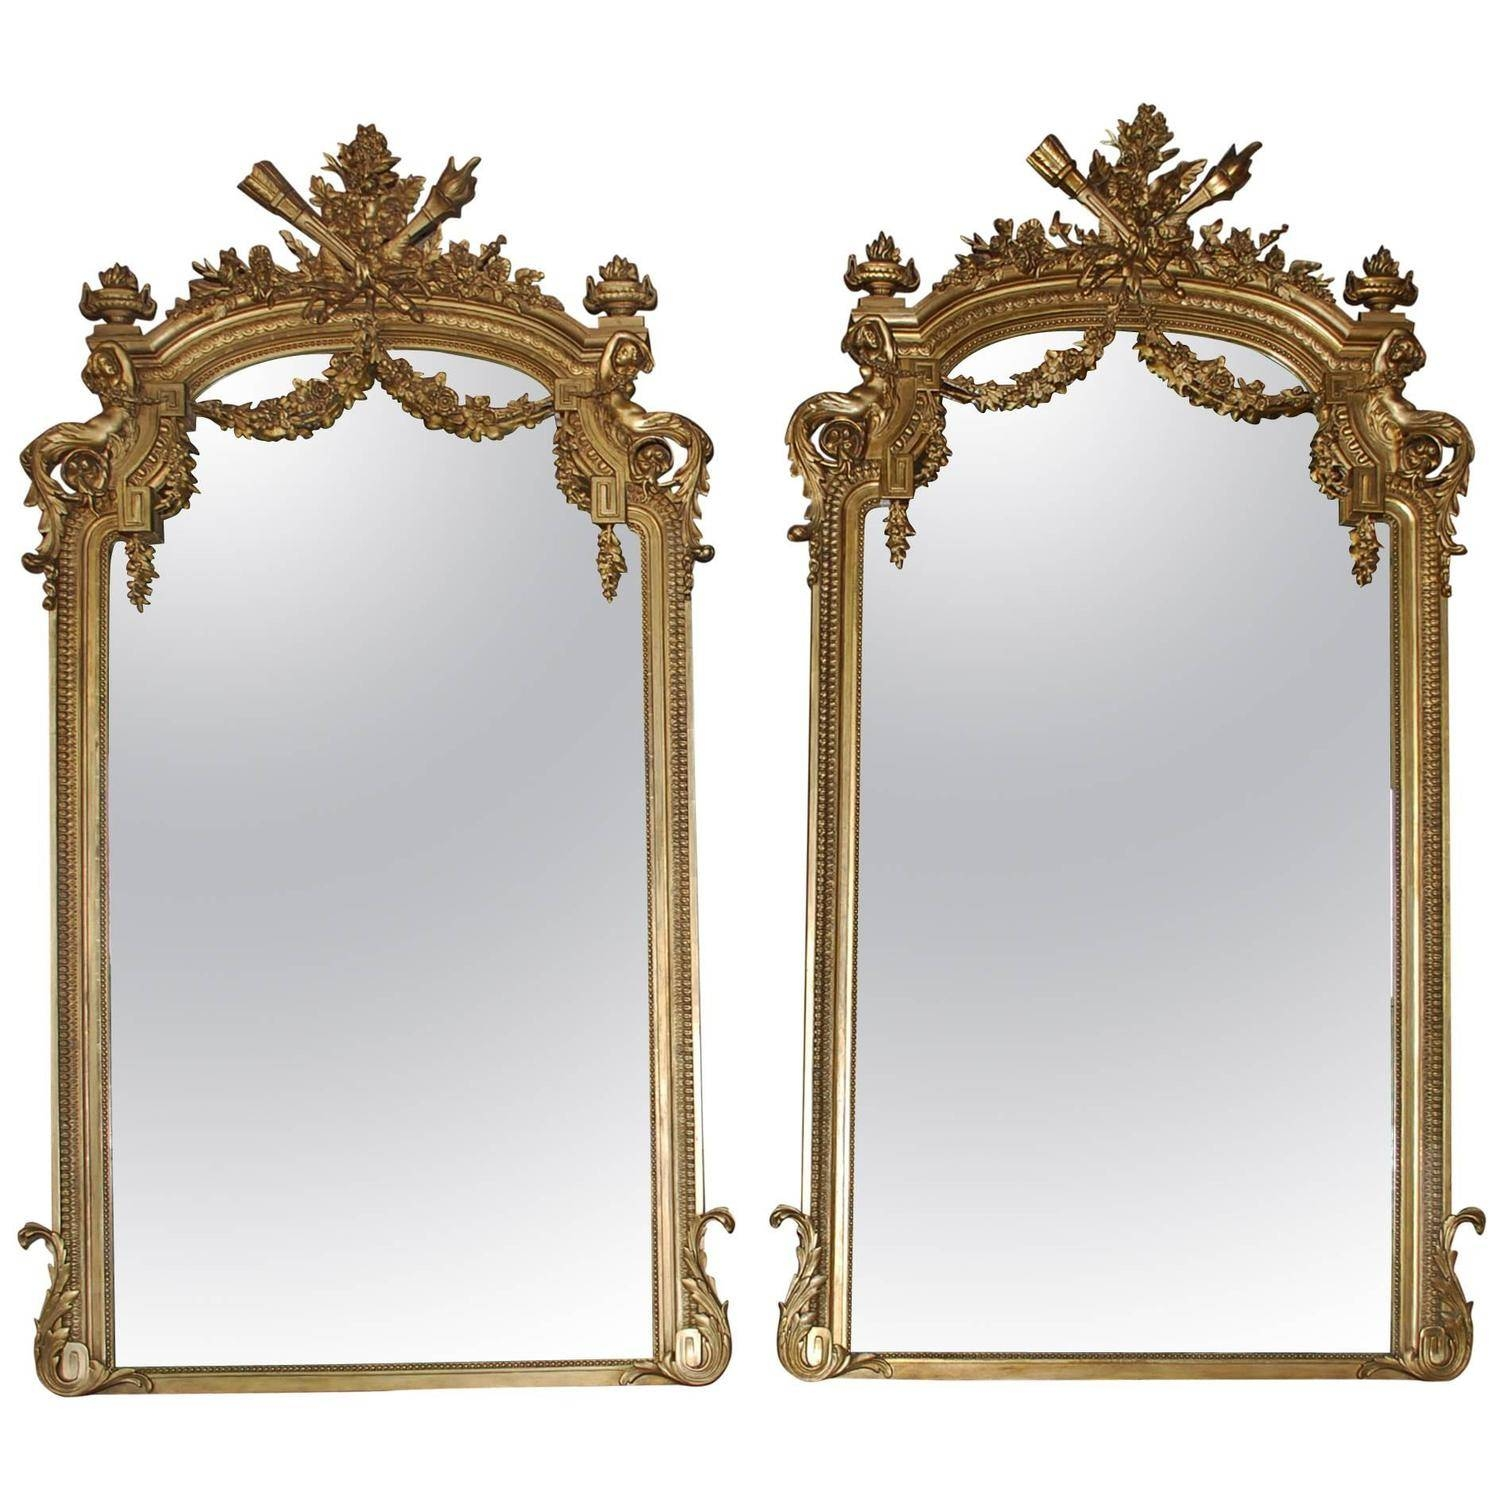 Pair Of 19Th Century Large Gold Gilded Mirror At 1Stdibs With Antique Gilded Mirrors (View 12 of 25)